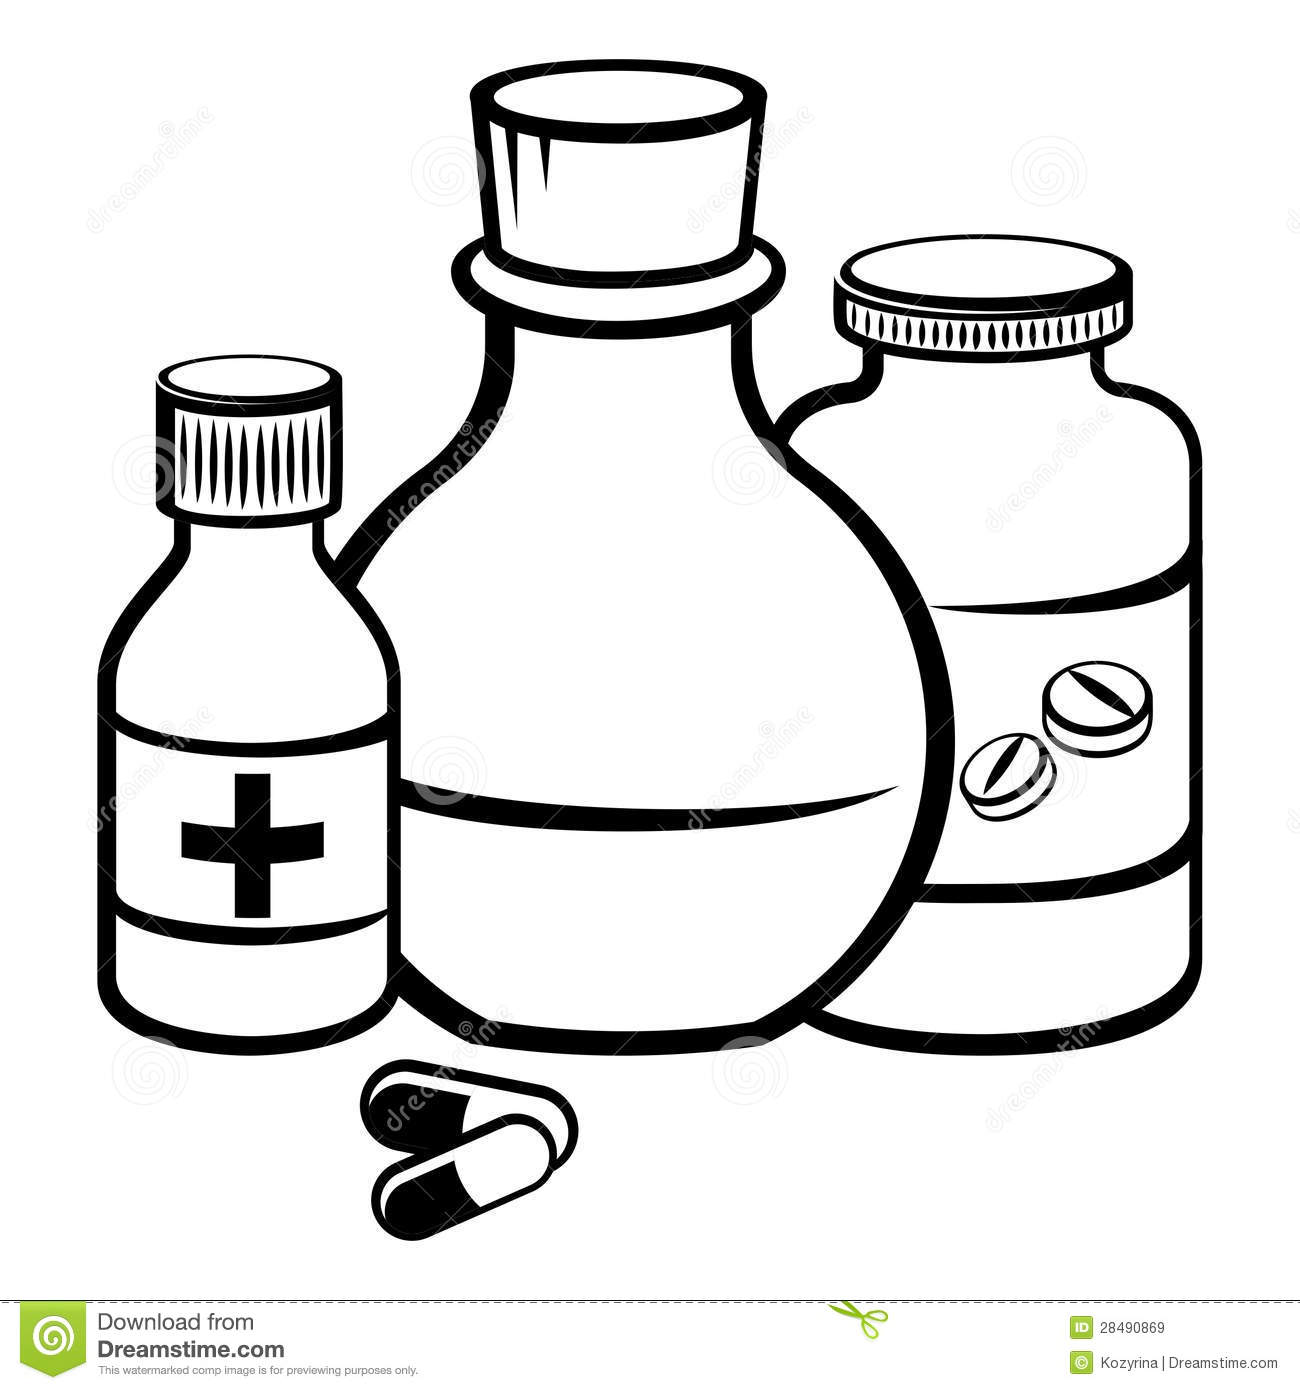 Royalty Free Stock Images Medicine Bottles Image28490869 on flask cartoon